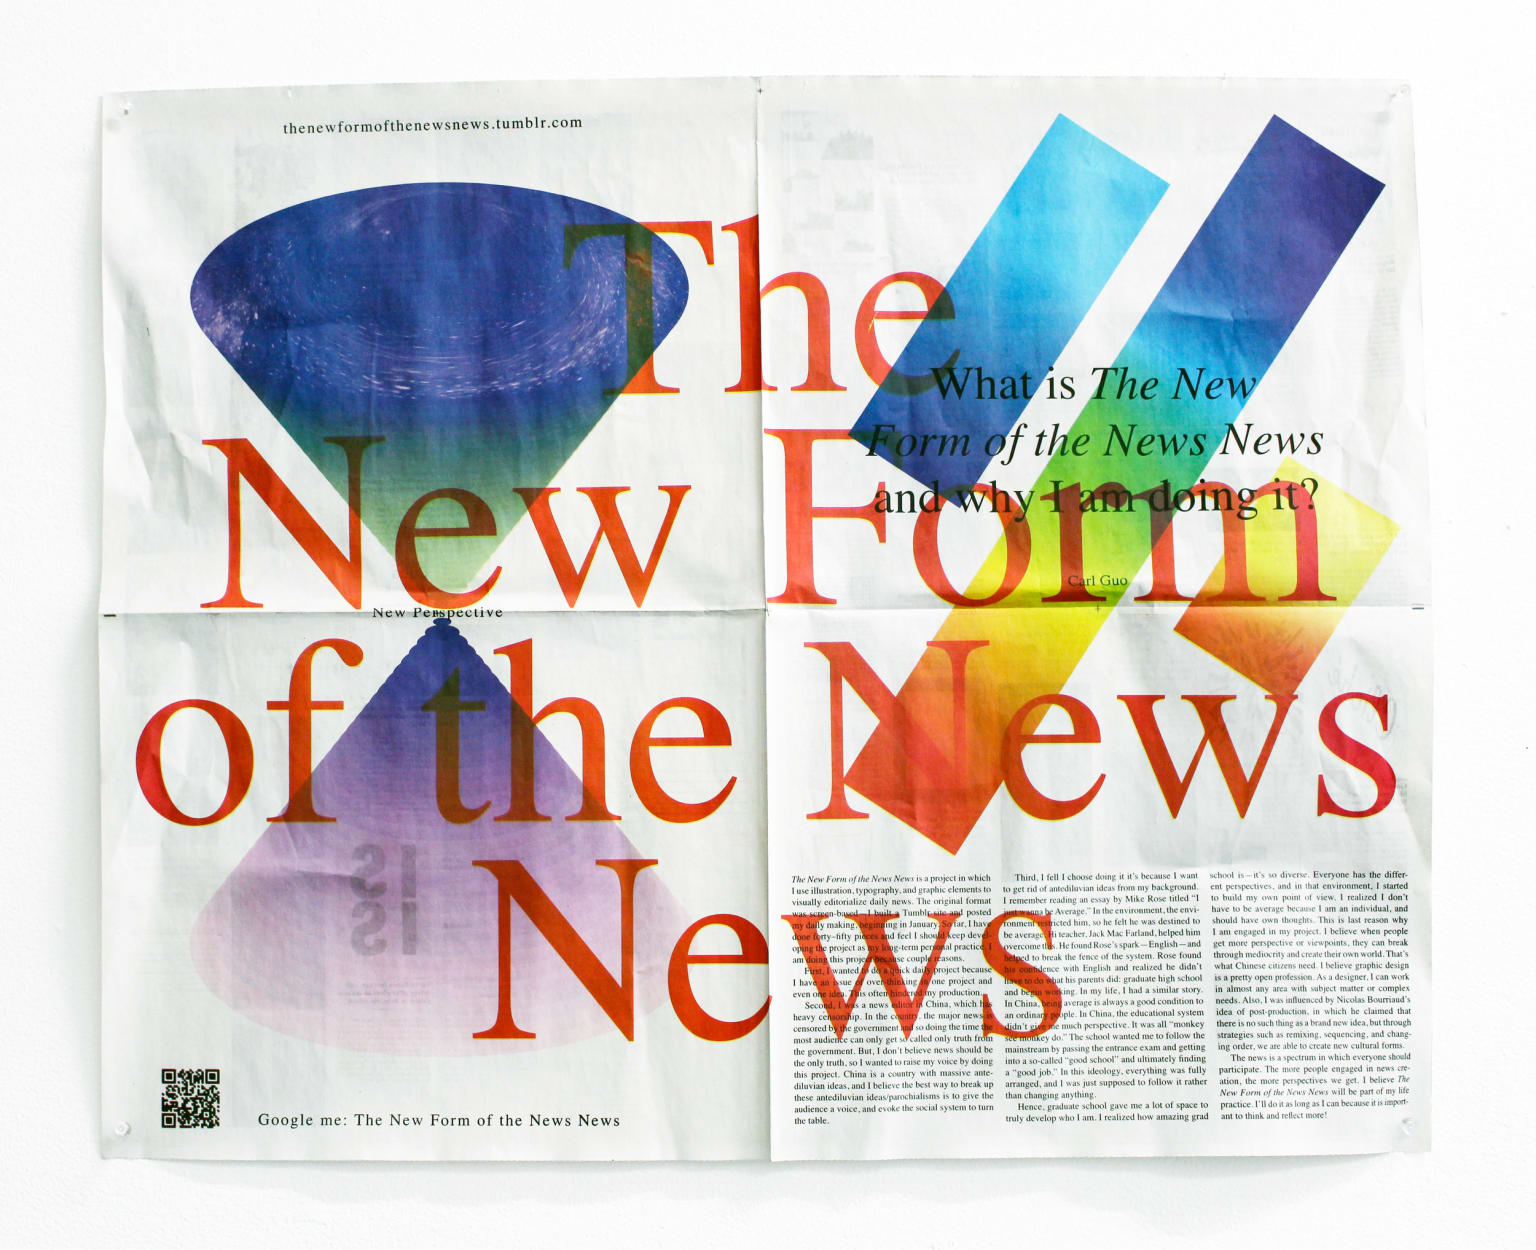 The New Form of the News News